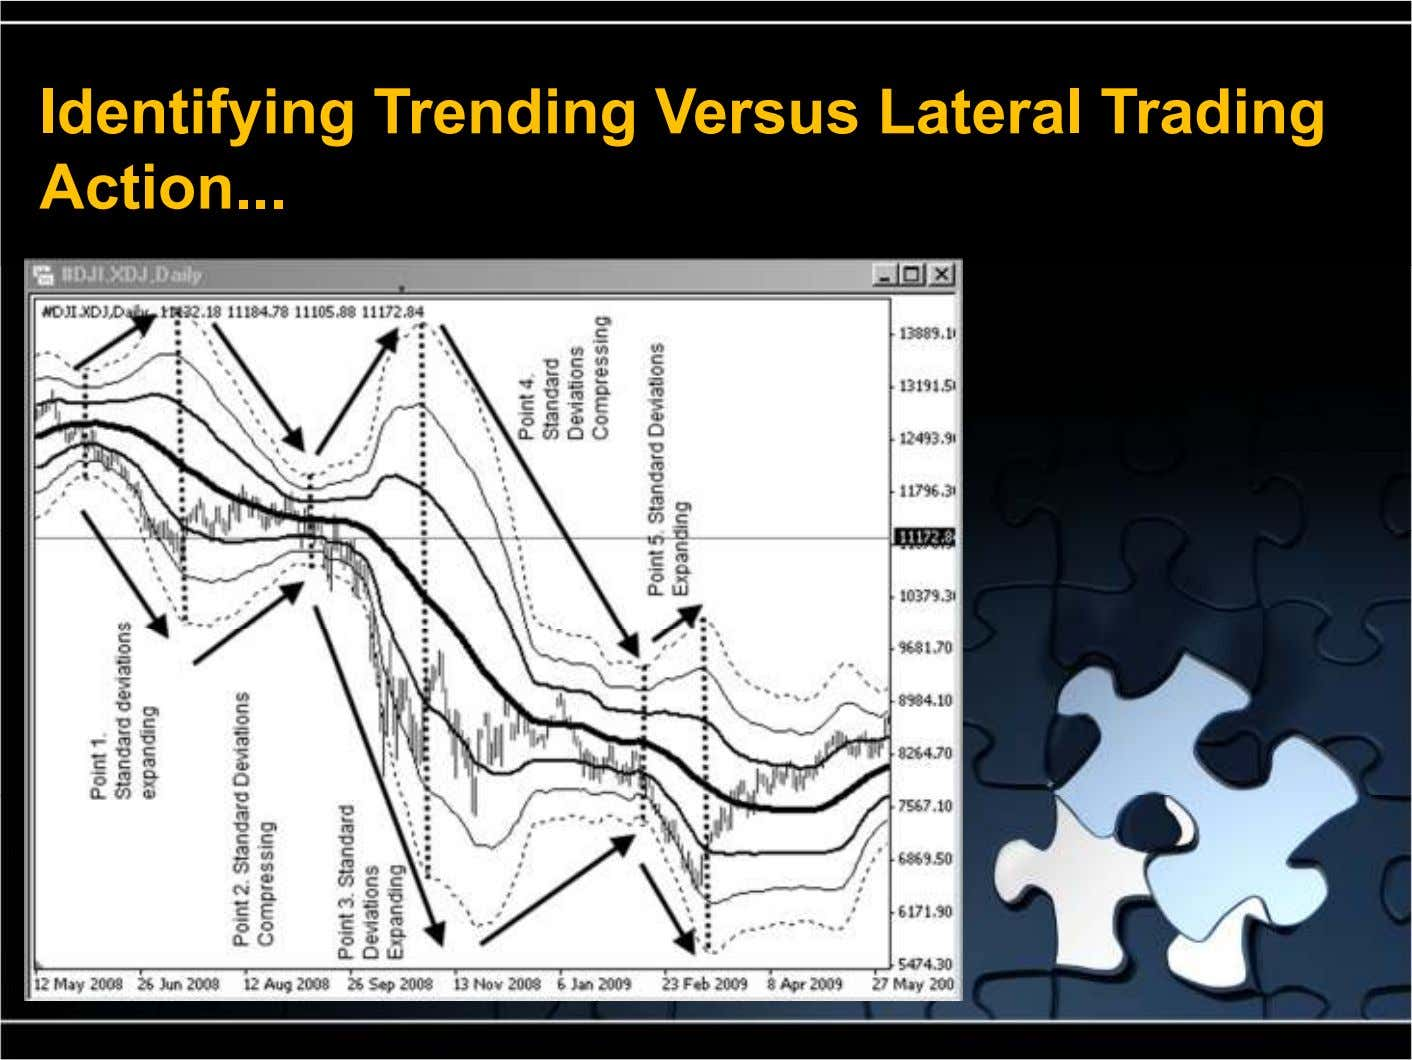 Identifying Trending Versus Lateral Trading Action ...